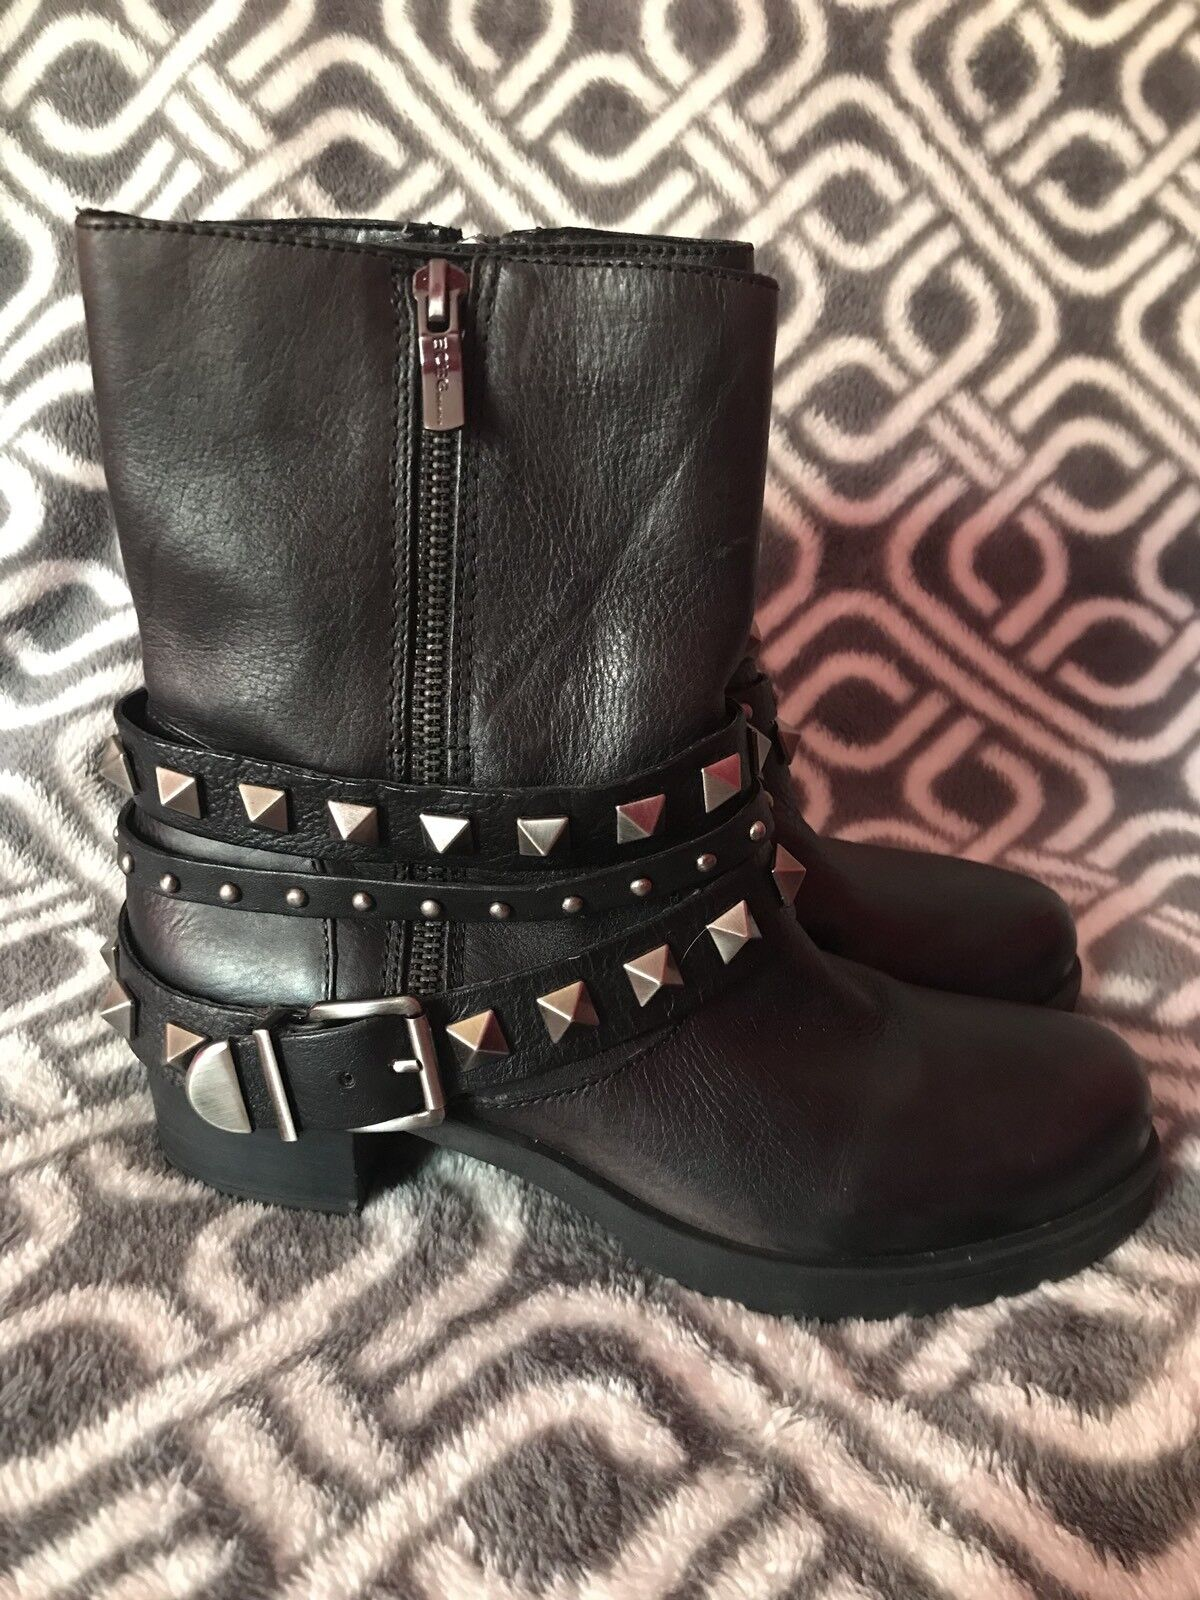 BCBG Studded Black Leather Ankle Boots Booties Size 6M